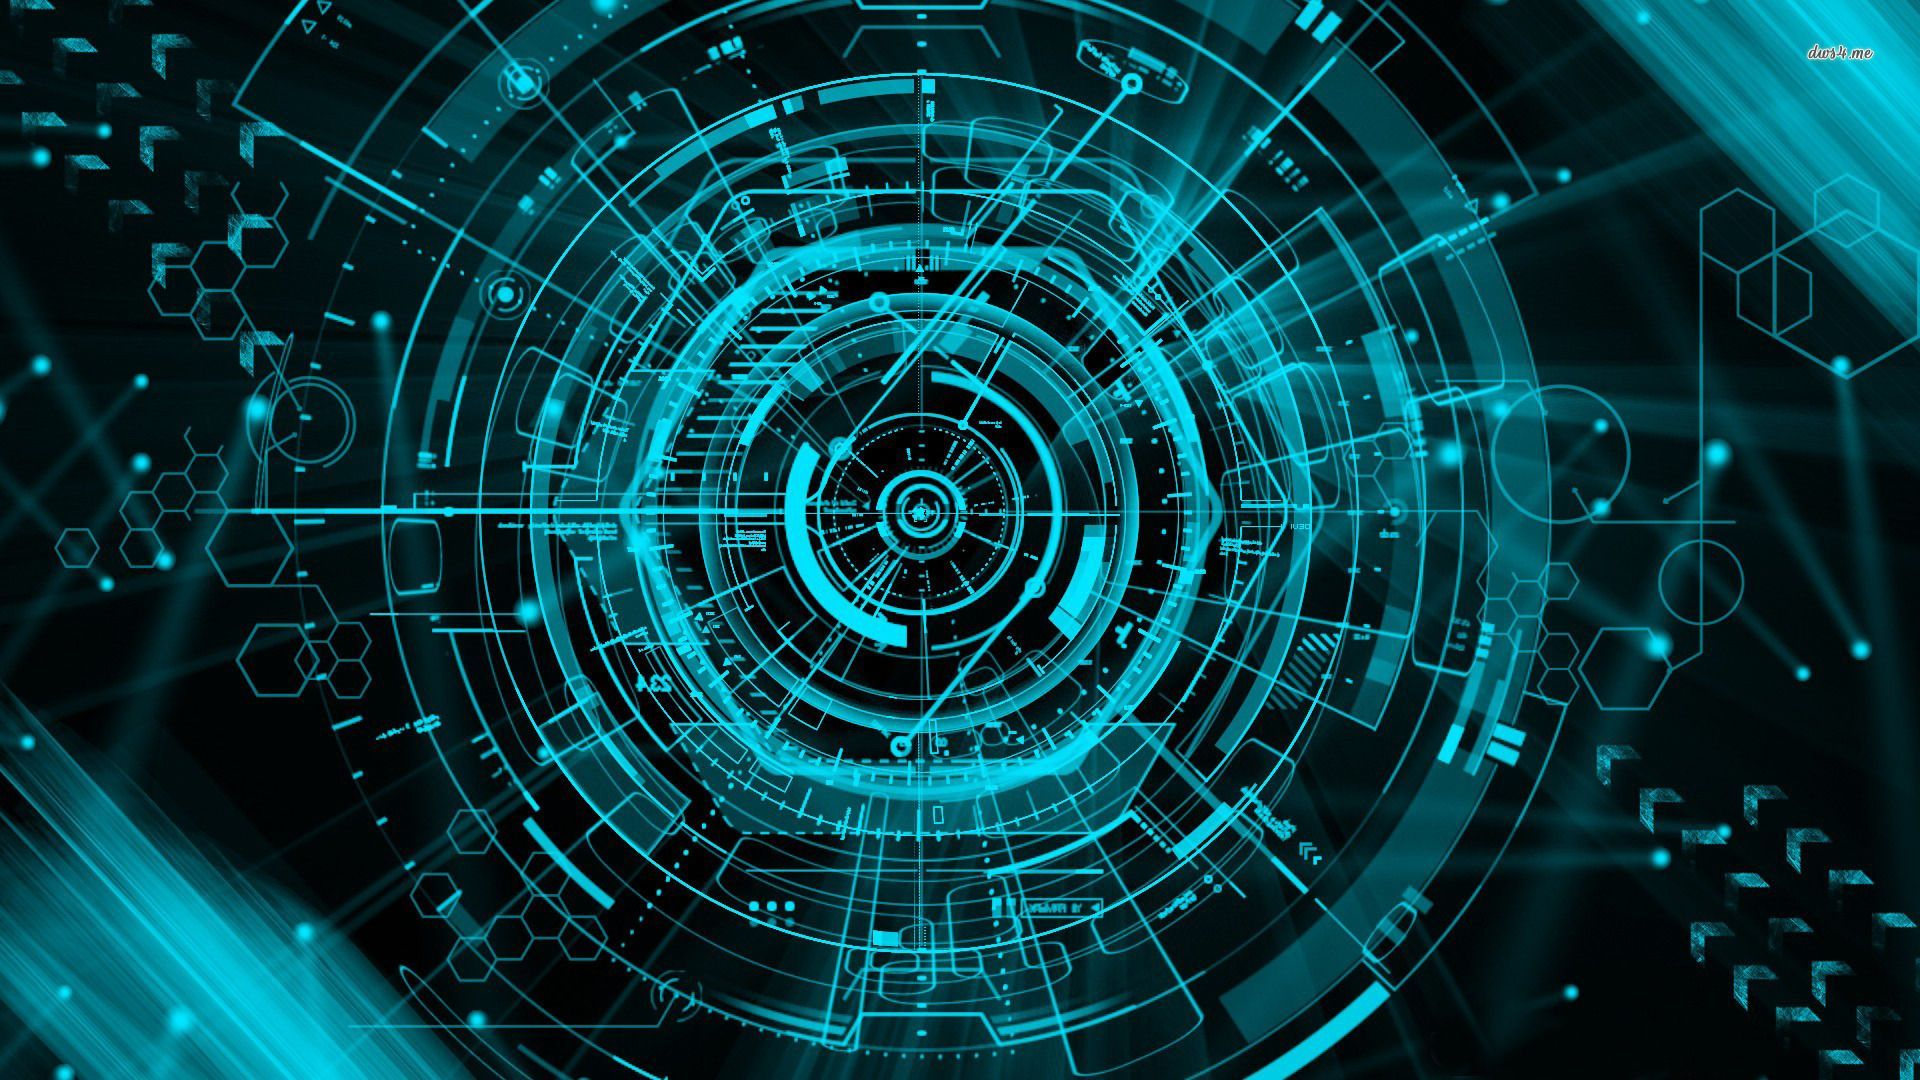 Cool Technology Wallpapers Top Free Cool Technology Backgrounds Wallpaperaccess